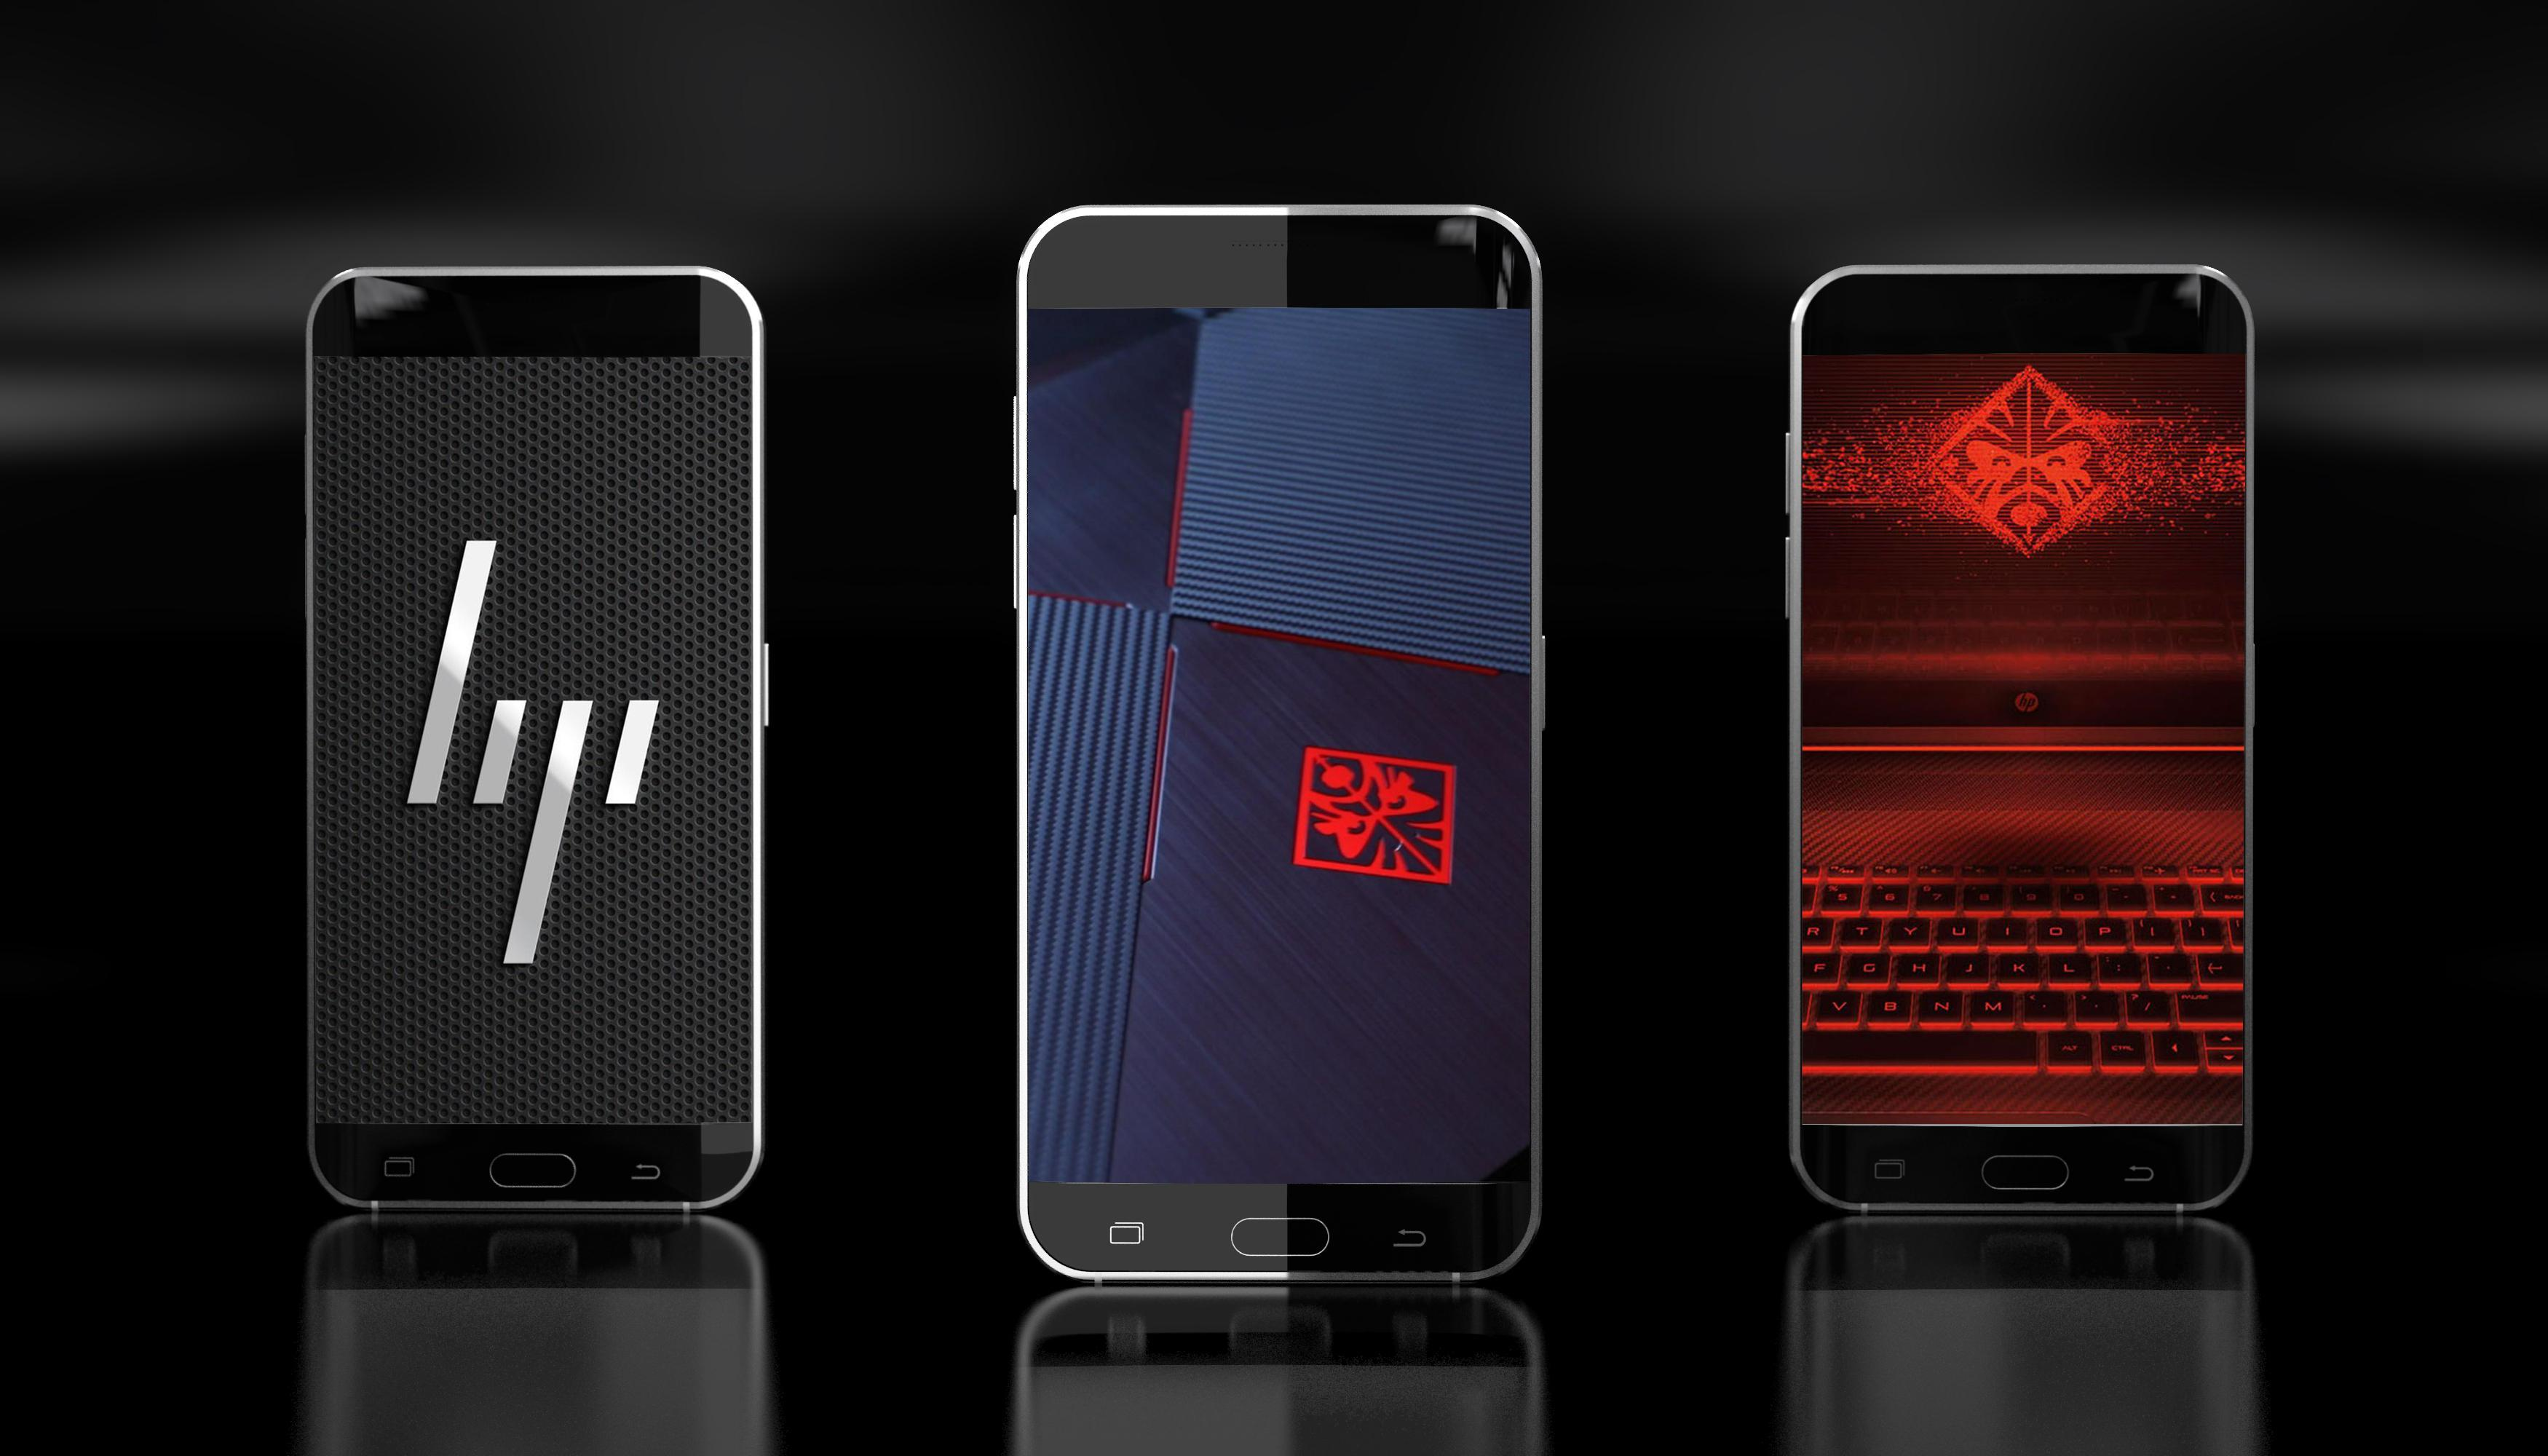 Hp Omen Wallpapers Backgrounds For Android Apk Download